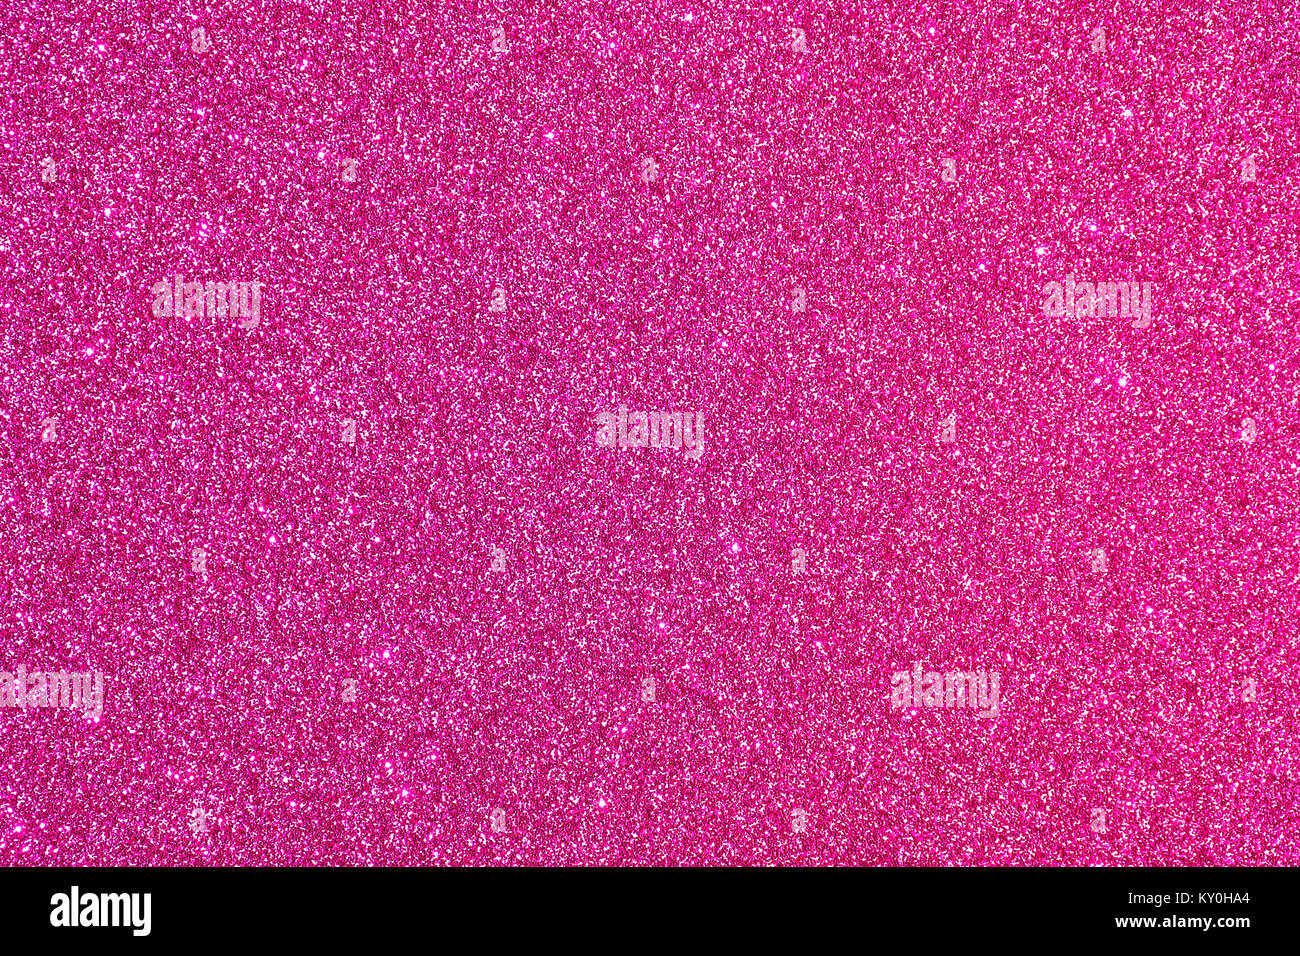 Shiny glimmering pink texture - Stock Image